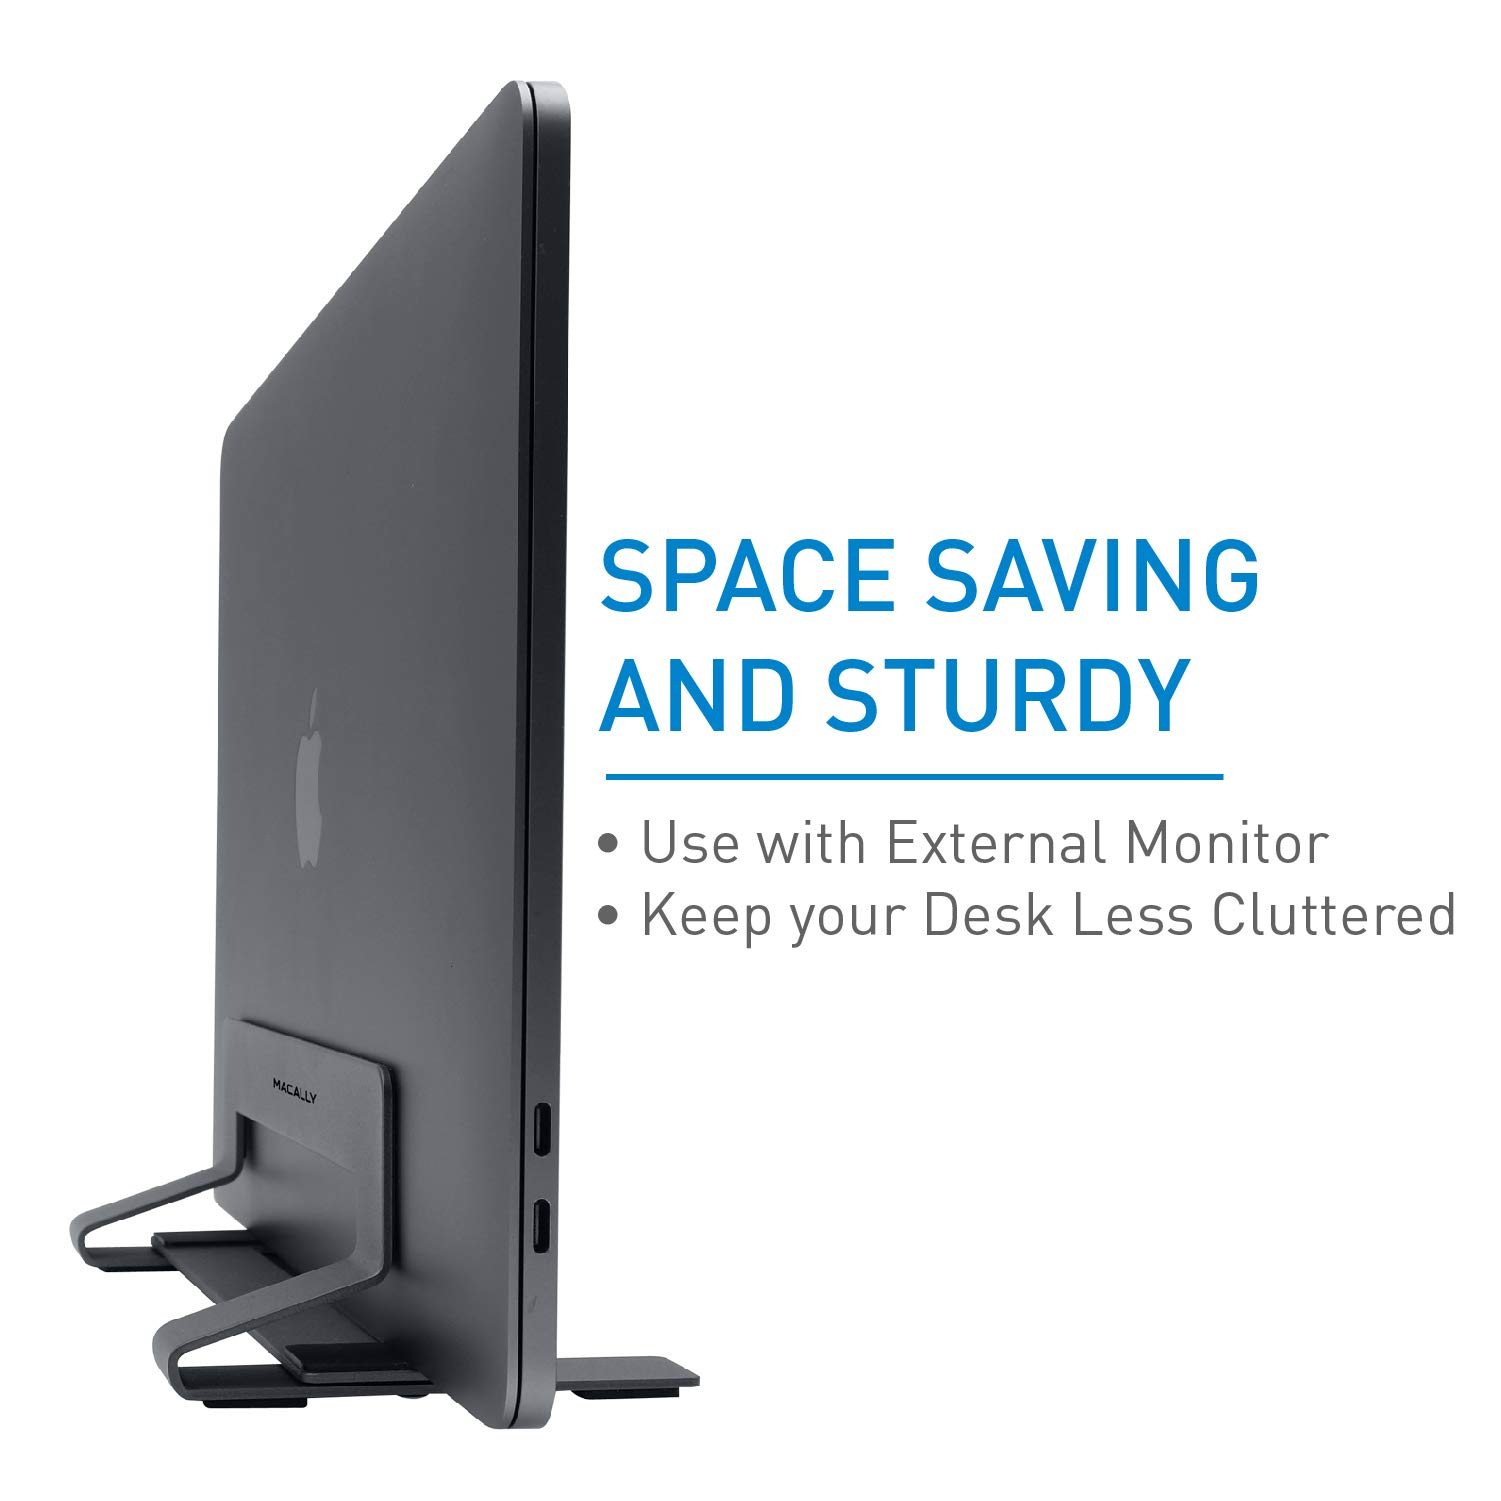 Macally Vertical Laptop Stand for Desk Space - Adjustable Vertical Stand Cradle - Laptop Holder - Apple MacBook Pro Air/Asus Chromebook Flip Samsung Notebook 9 Lenovo ThinkPad Dell XPS Acer Switch by Macally (Image #2)